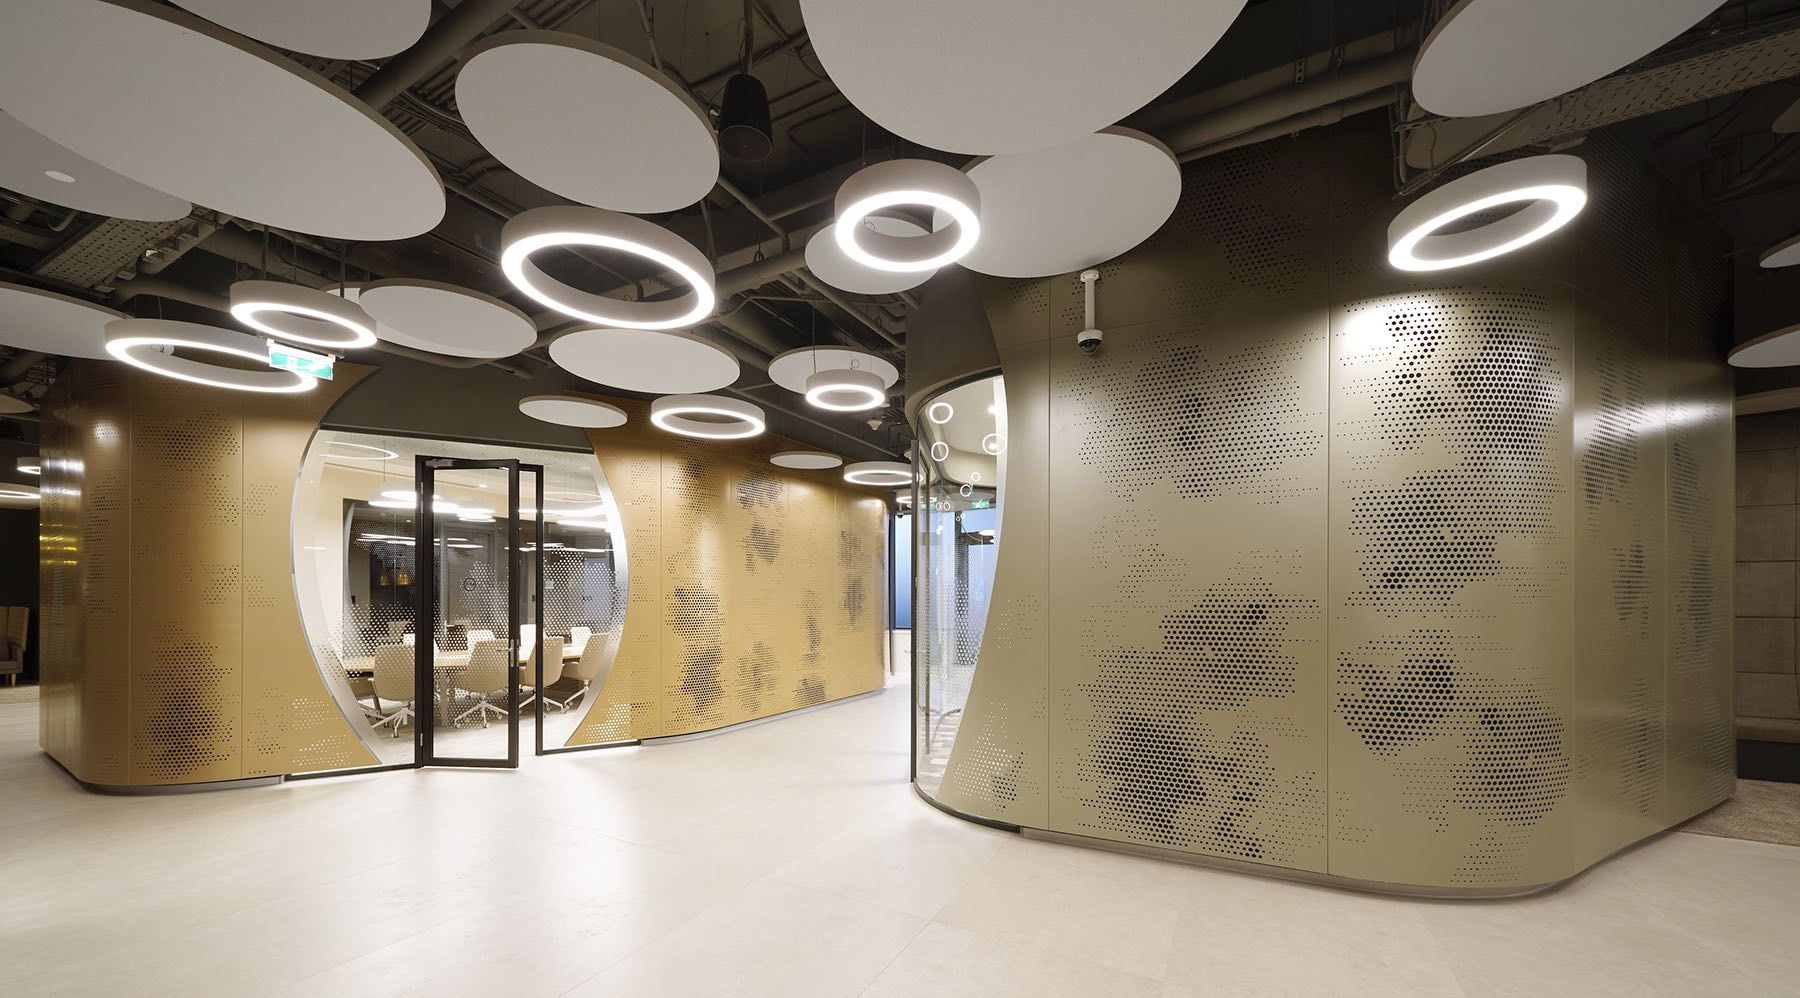 A Tour Of Sberbank's New Moscow Headquarters